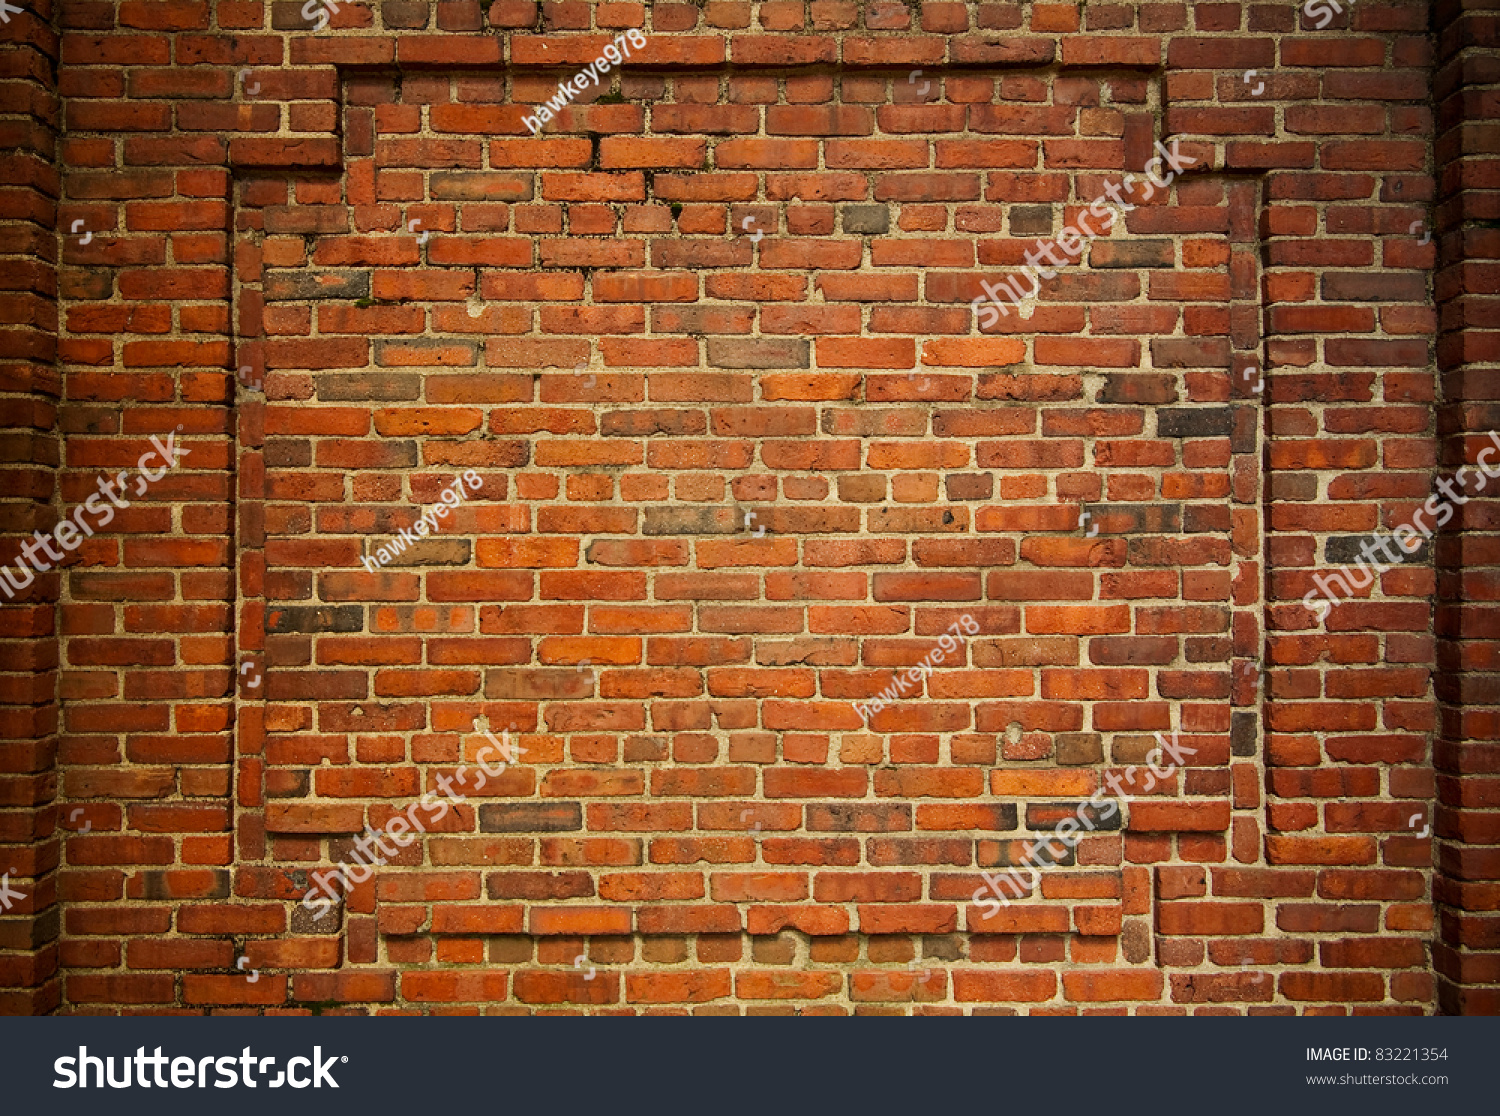 Old Brick Wall With Decorative Bricks Forming An Internal Frame